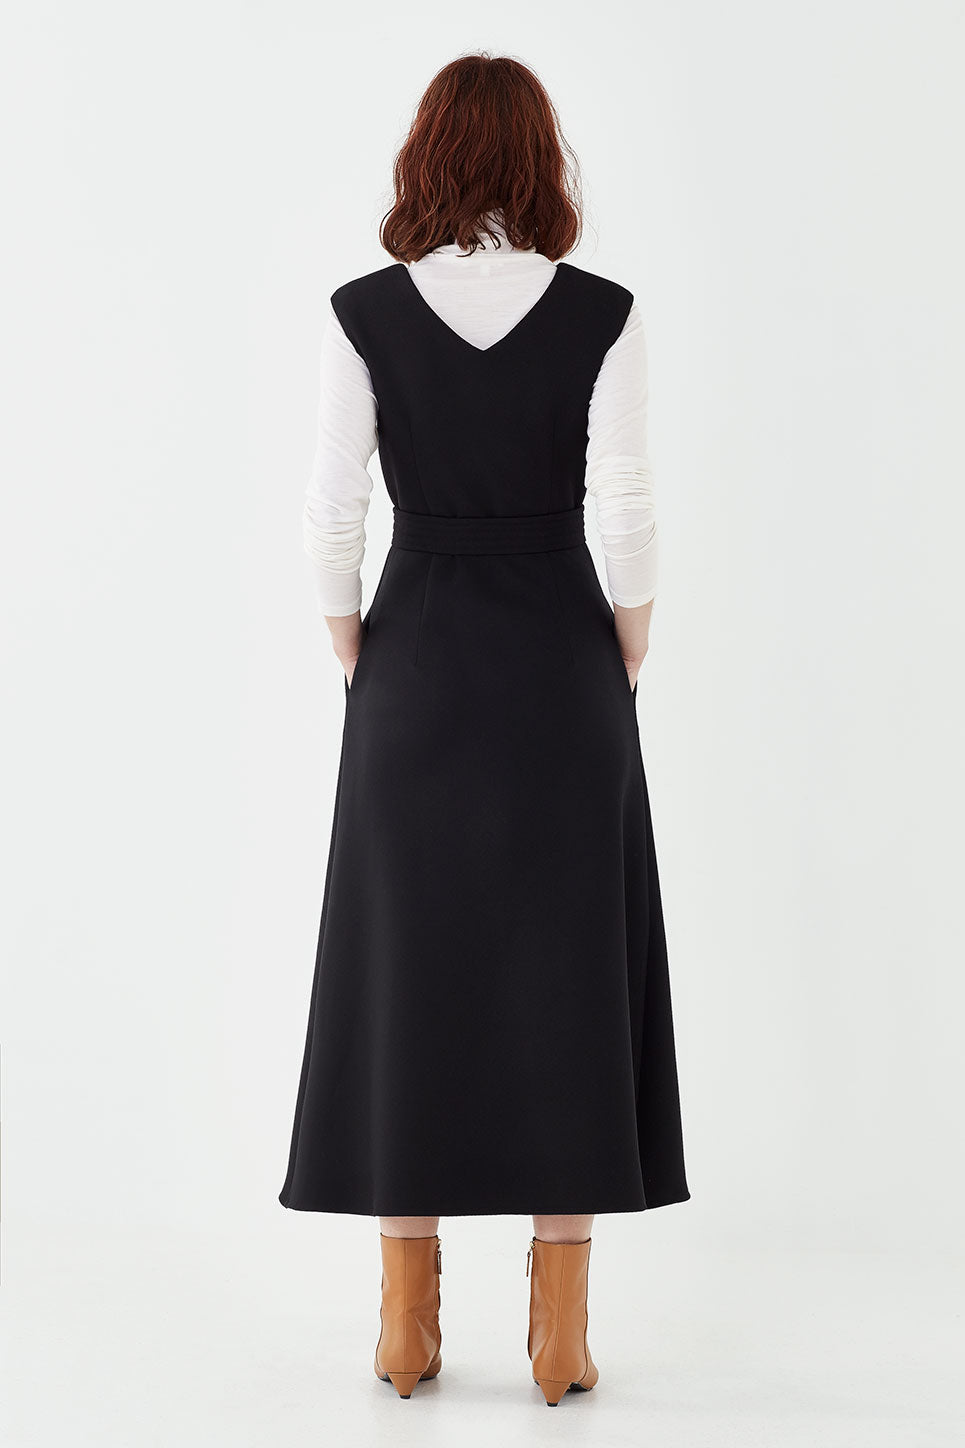 The Arden Dress in Black